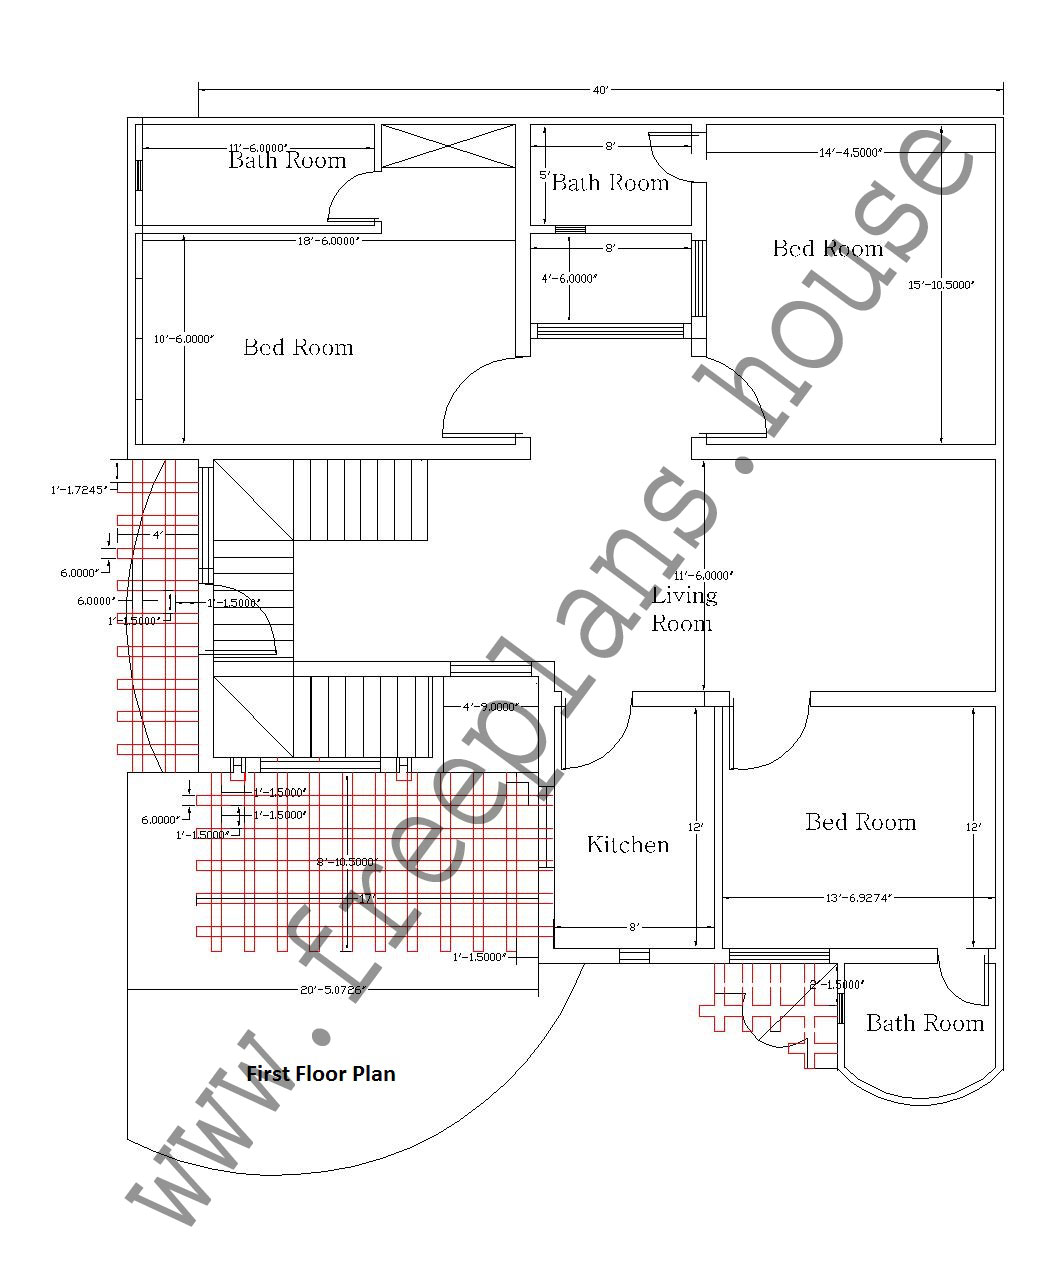 40 Sqm To Sqft 100 800 Square Feet In Square Meters